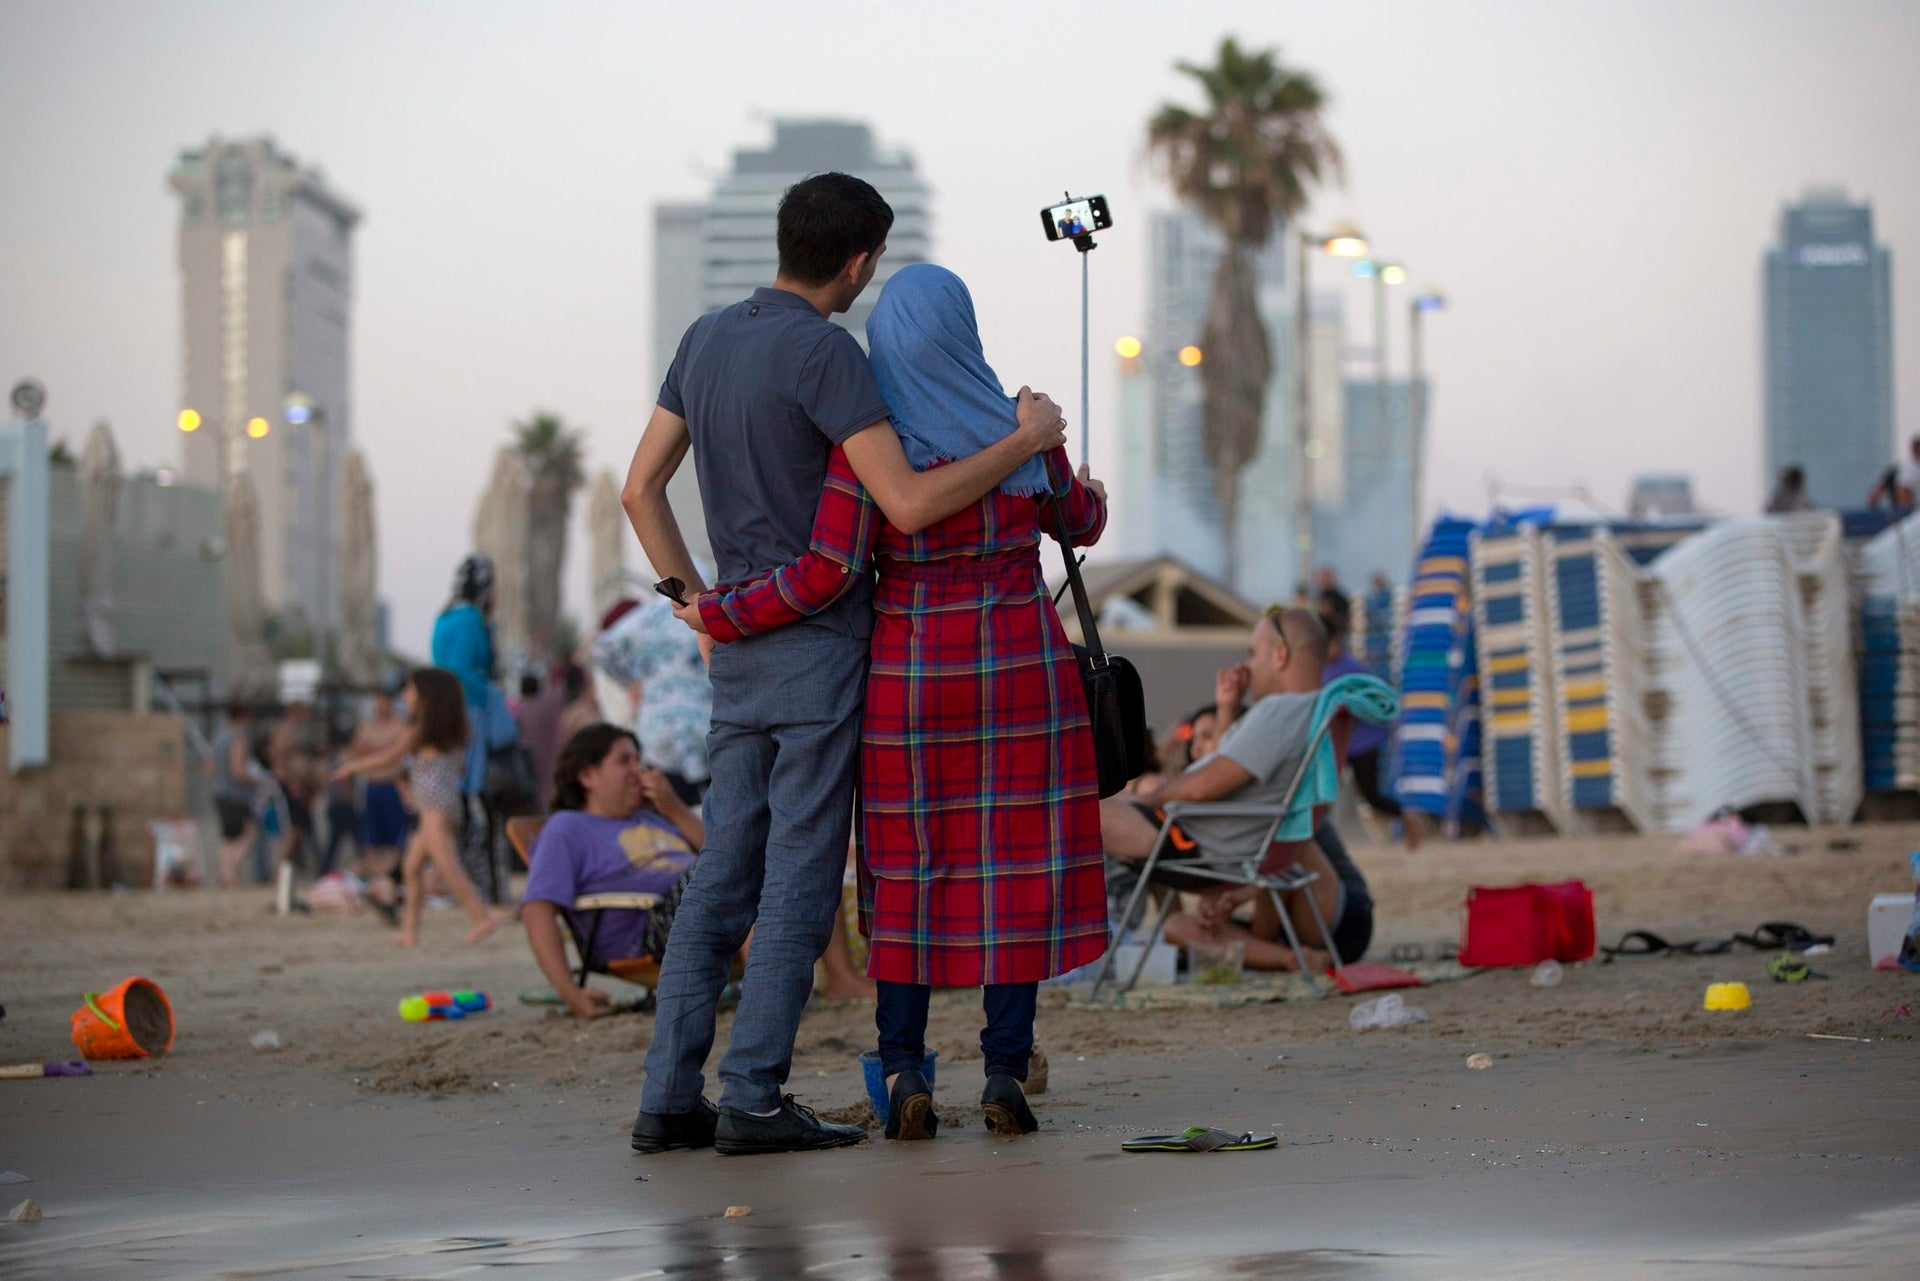 Israeli Arab couple take a selfie photo at the Mediterranean sea during the Eid al-Fitr holiday, in Tel Aviv, Israel, Friday, July 8, 2016. Eid al-Fitr marks the end of the Muslim holy fasting month of Ramadan.